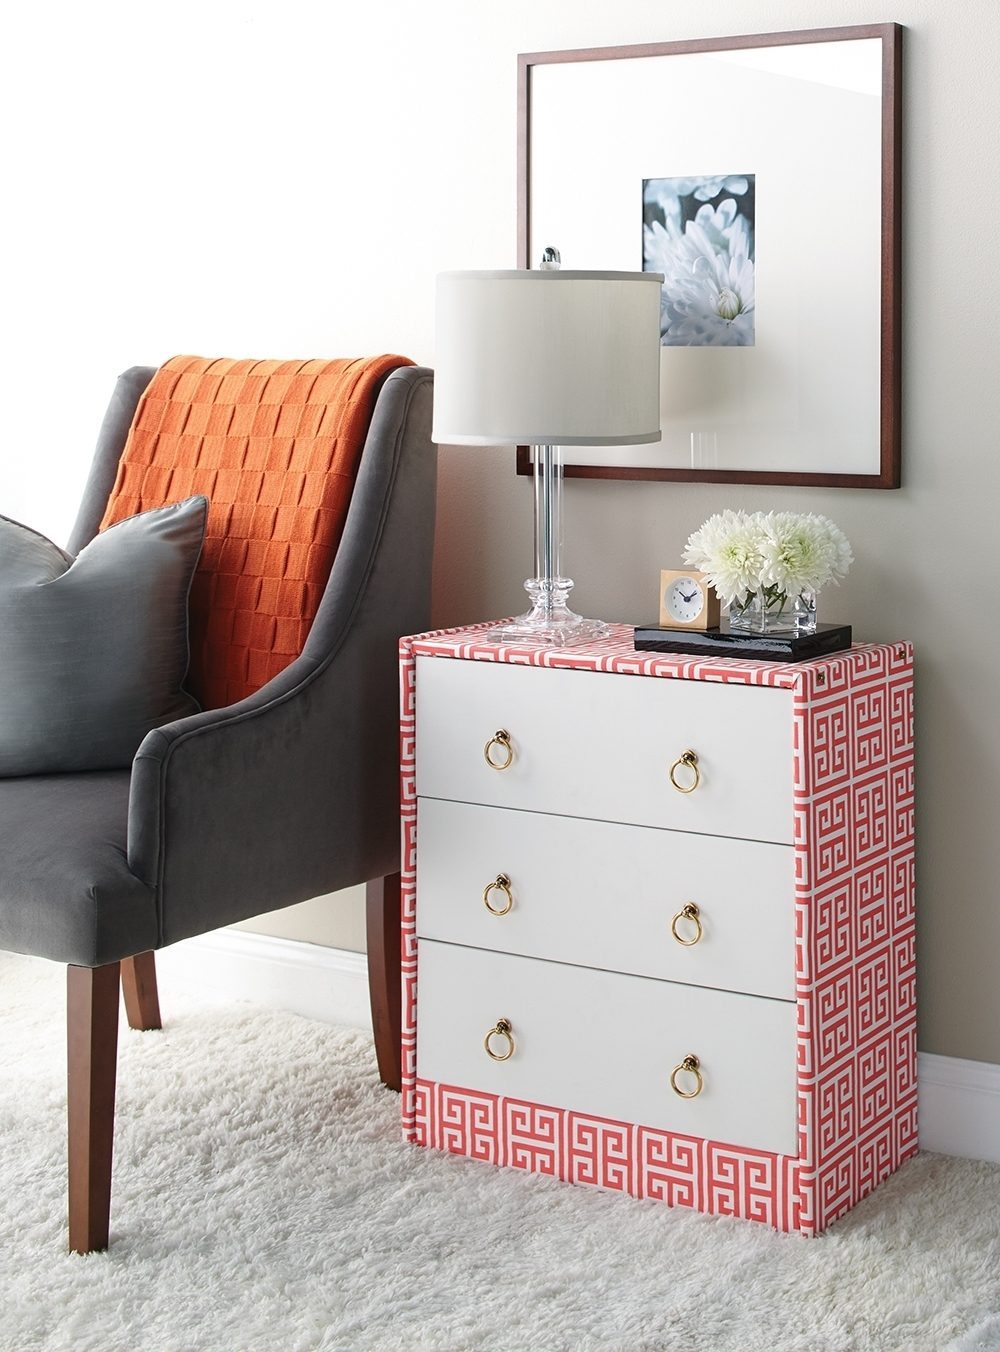 Starting with a very basic dress, we gave it a splash of color with a trendy fabric. Drawer fronts were painted and brass ring pulls installed. Cost was under $80, including the dresser, and all was completed in an afternoon.